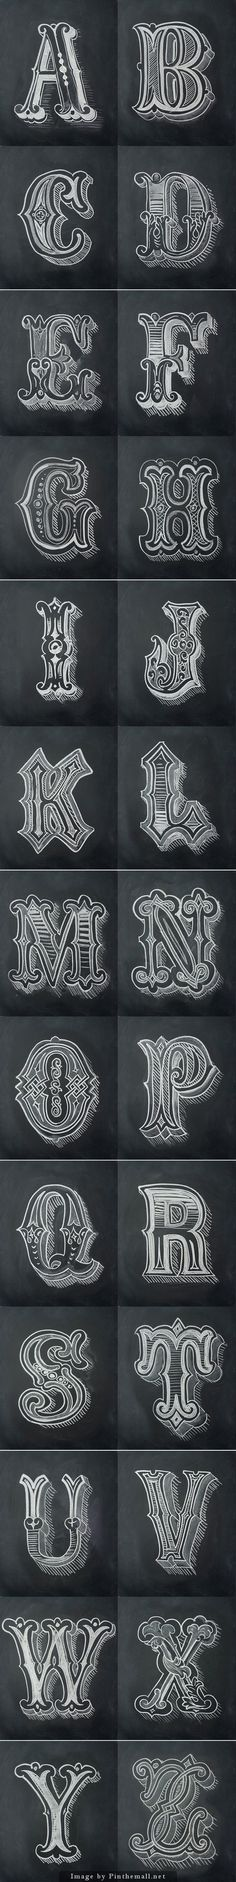 Chalk Alphabet by Antonio Rodrigues Jr... - a grouped images picture - Pin Them All: